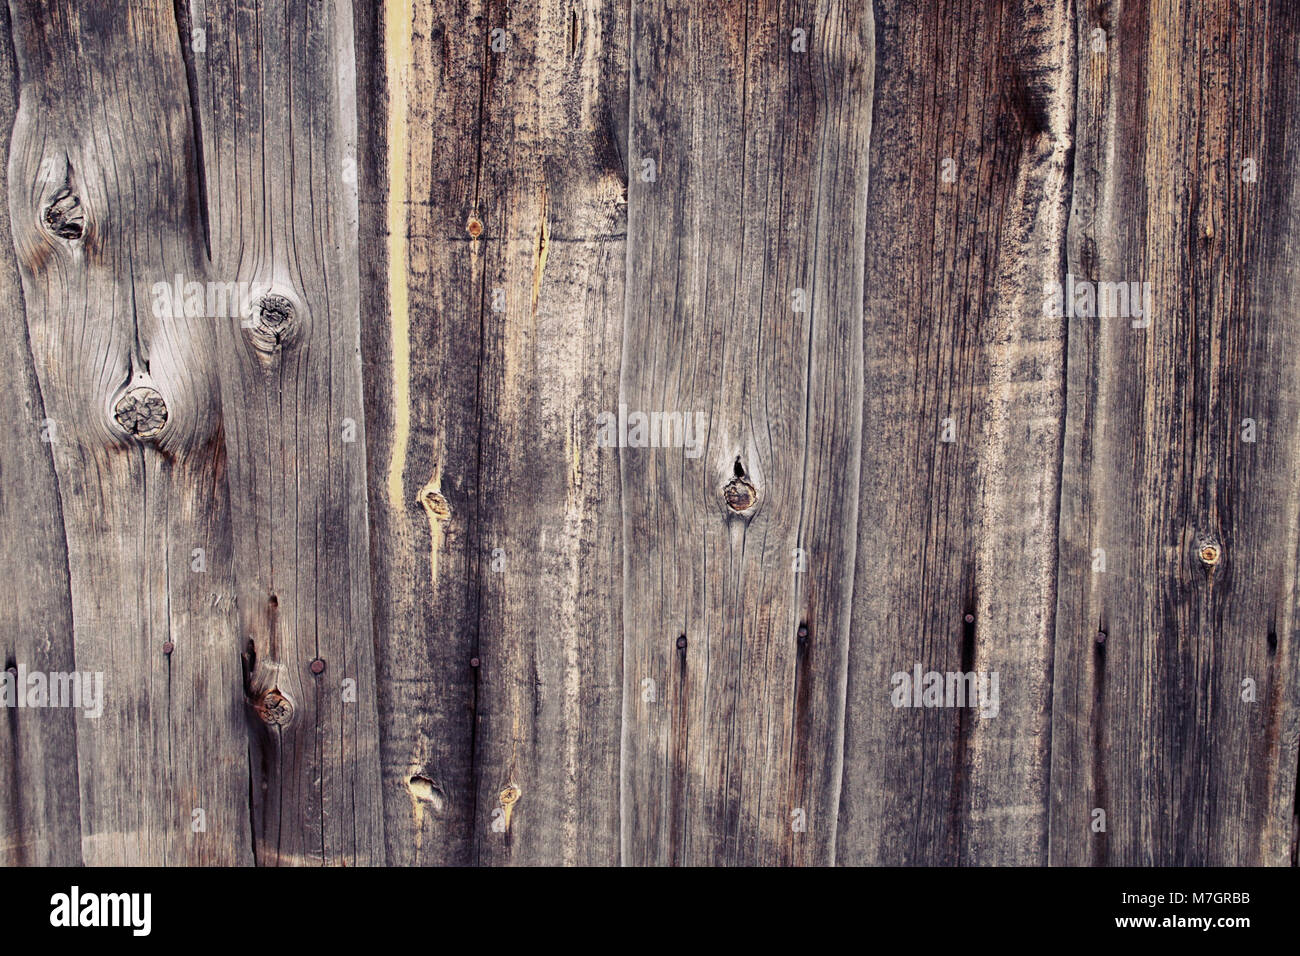 Wooden planks background. Wood texture - Stock Image